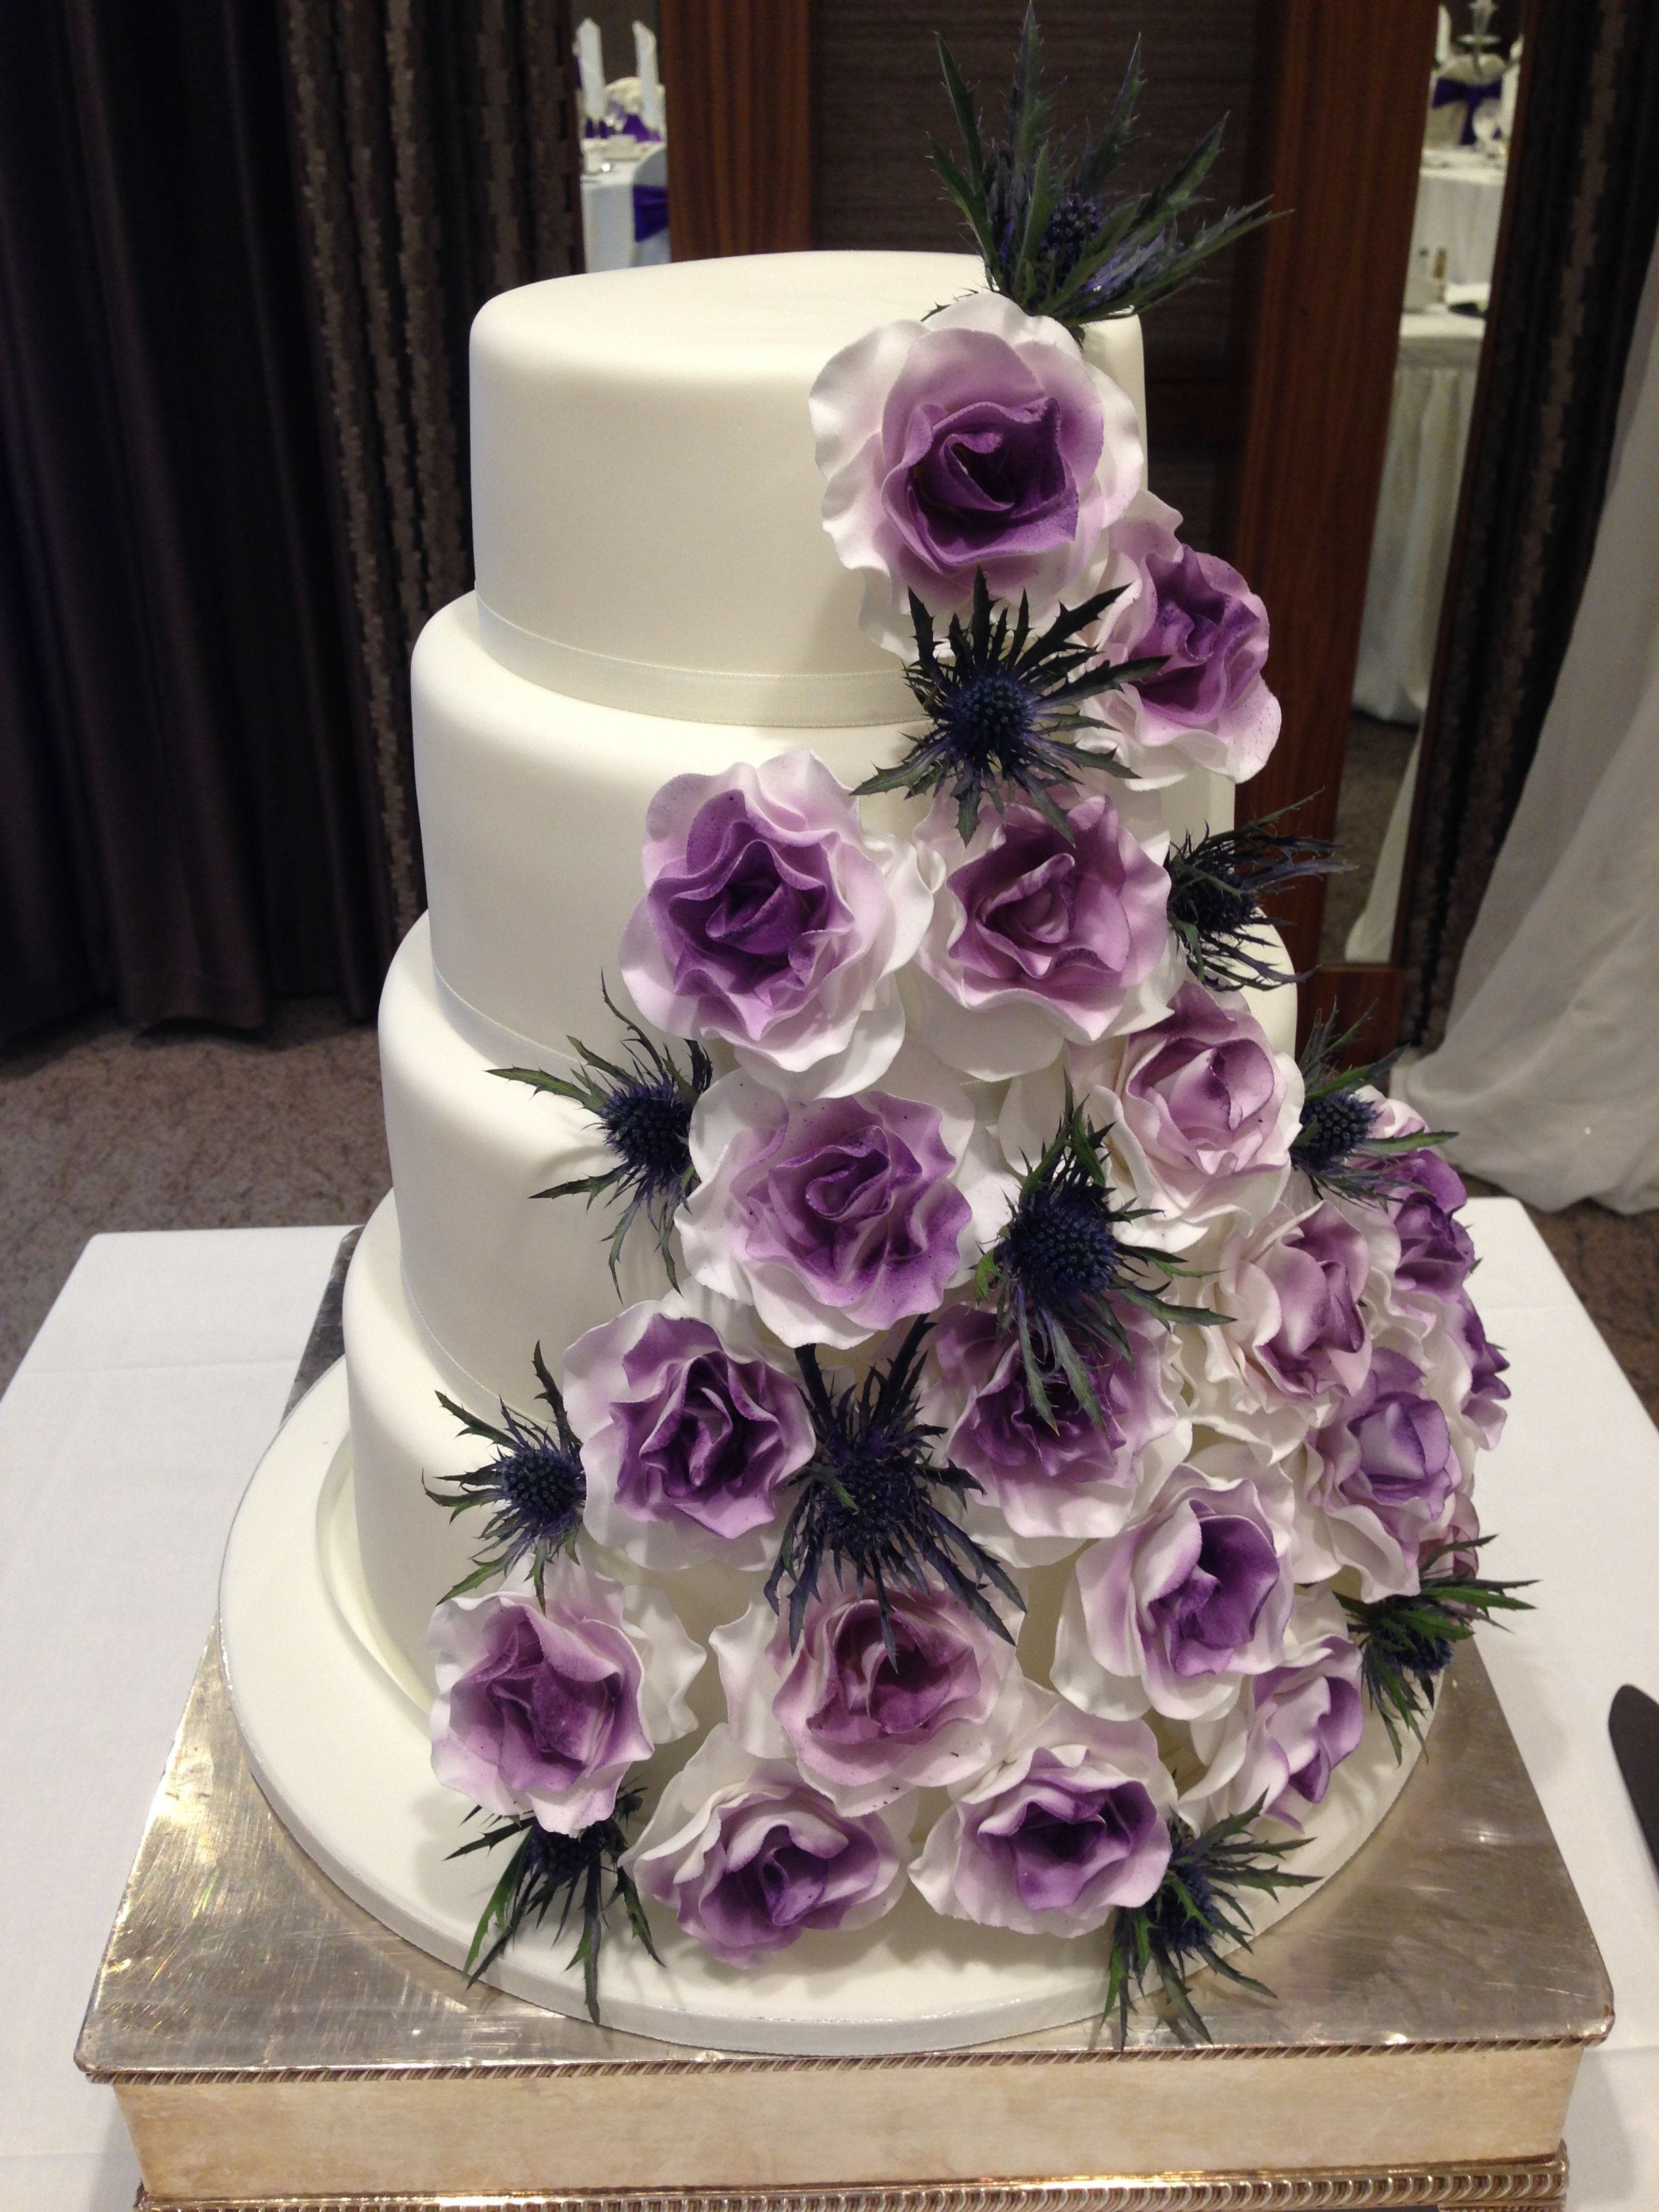 Fourtier plain white fondant with thistles and violet